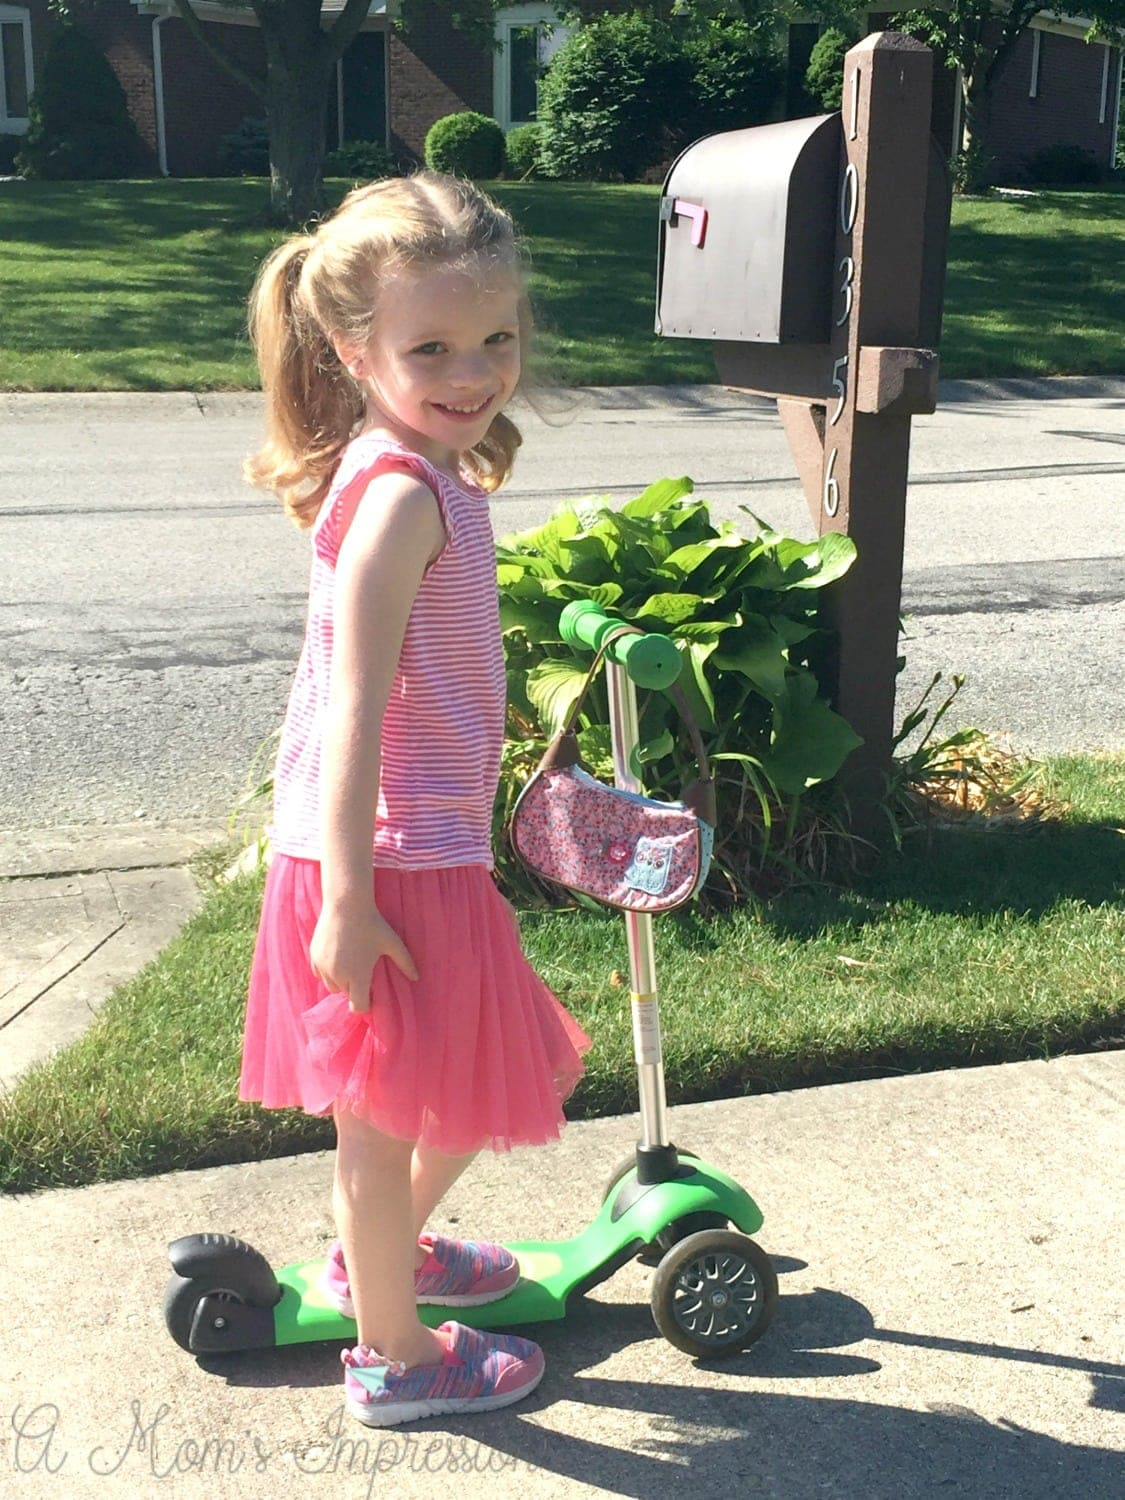 Riding a scooter